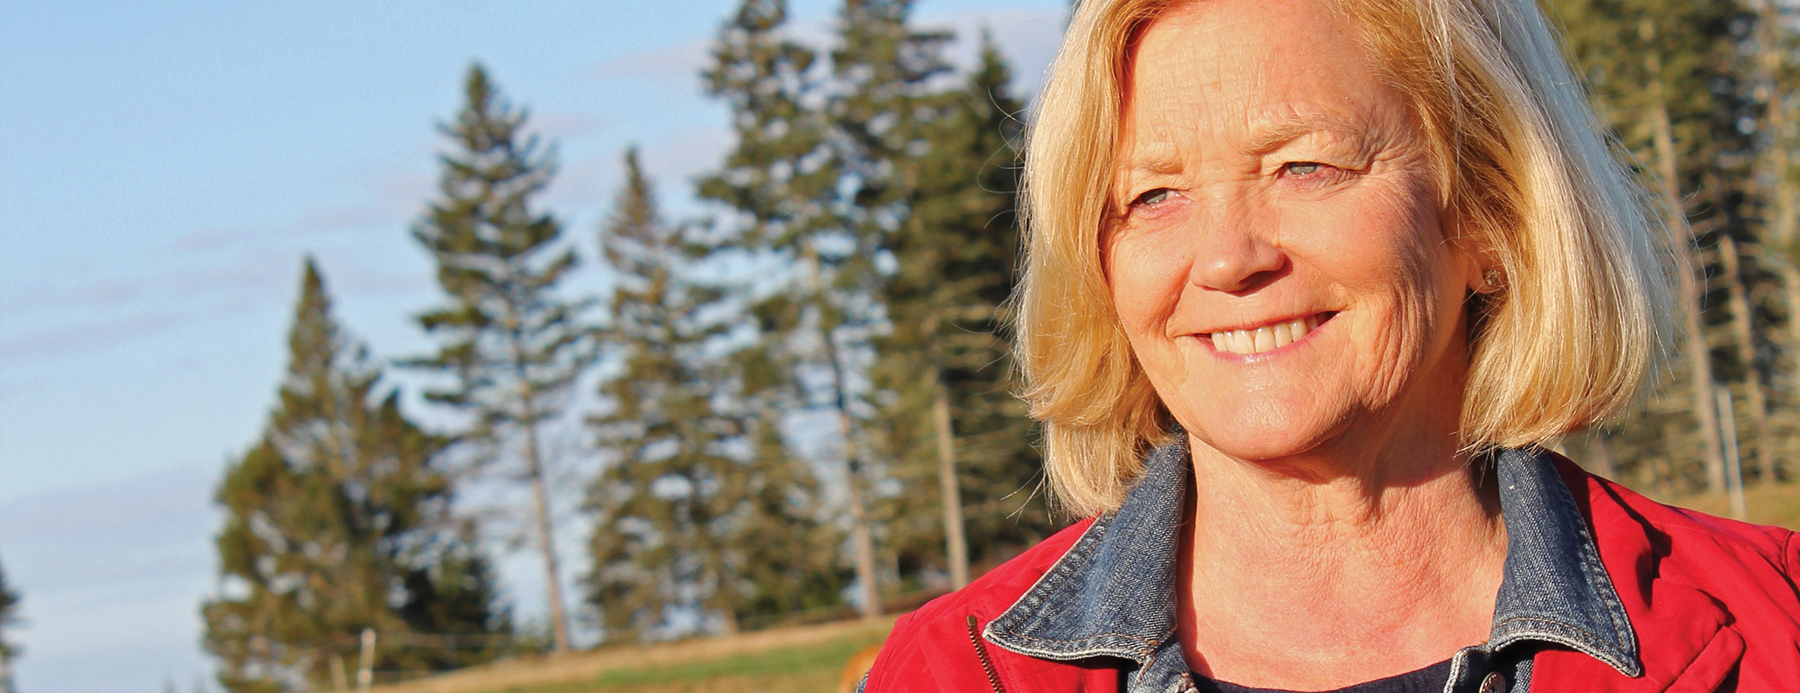 Ned Spang And Chellie Pingree Savor Lectures On Food And Wine